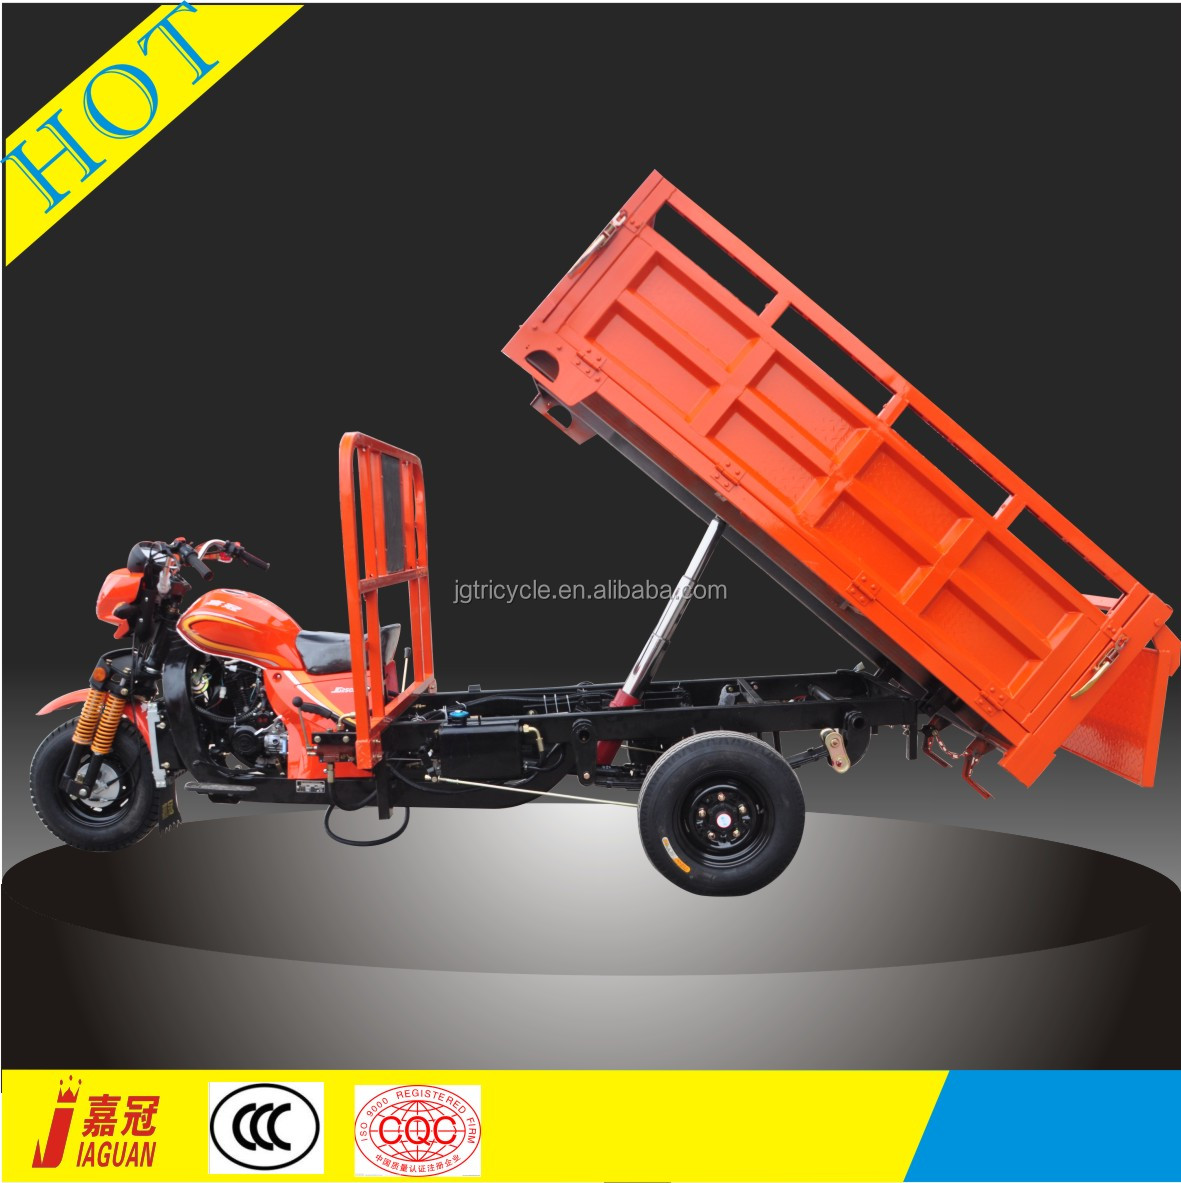 Hydraulic dumping reverse 3 wheel motorcycle for adults